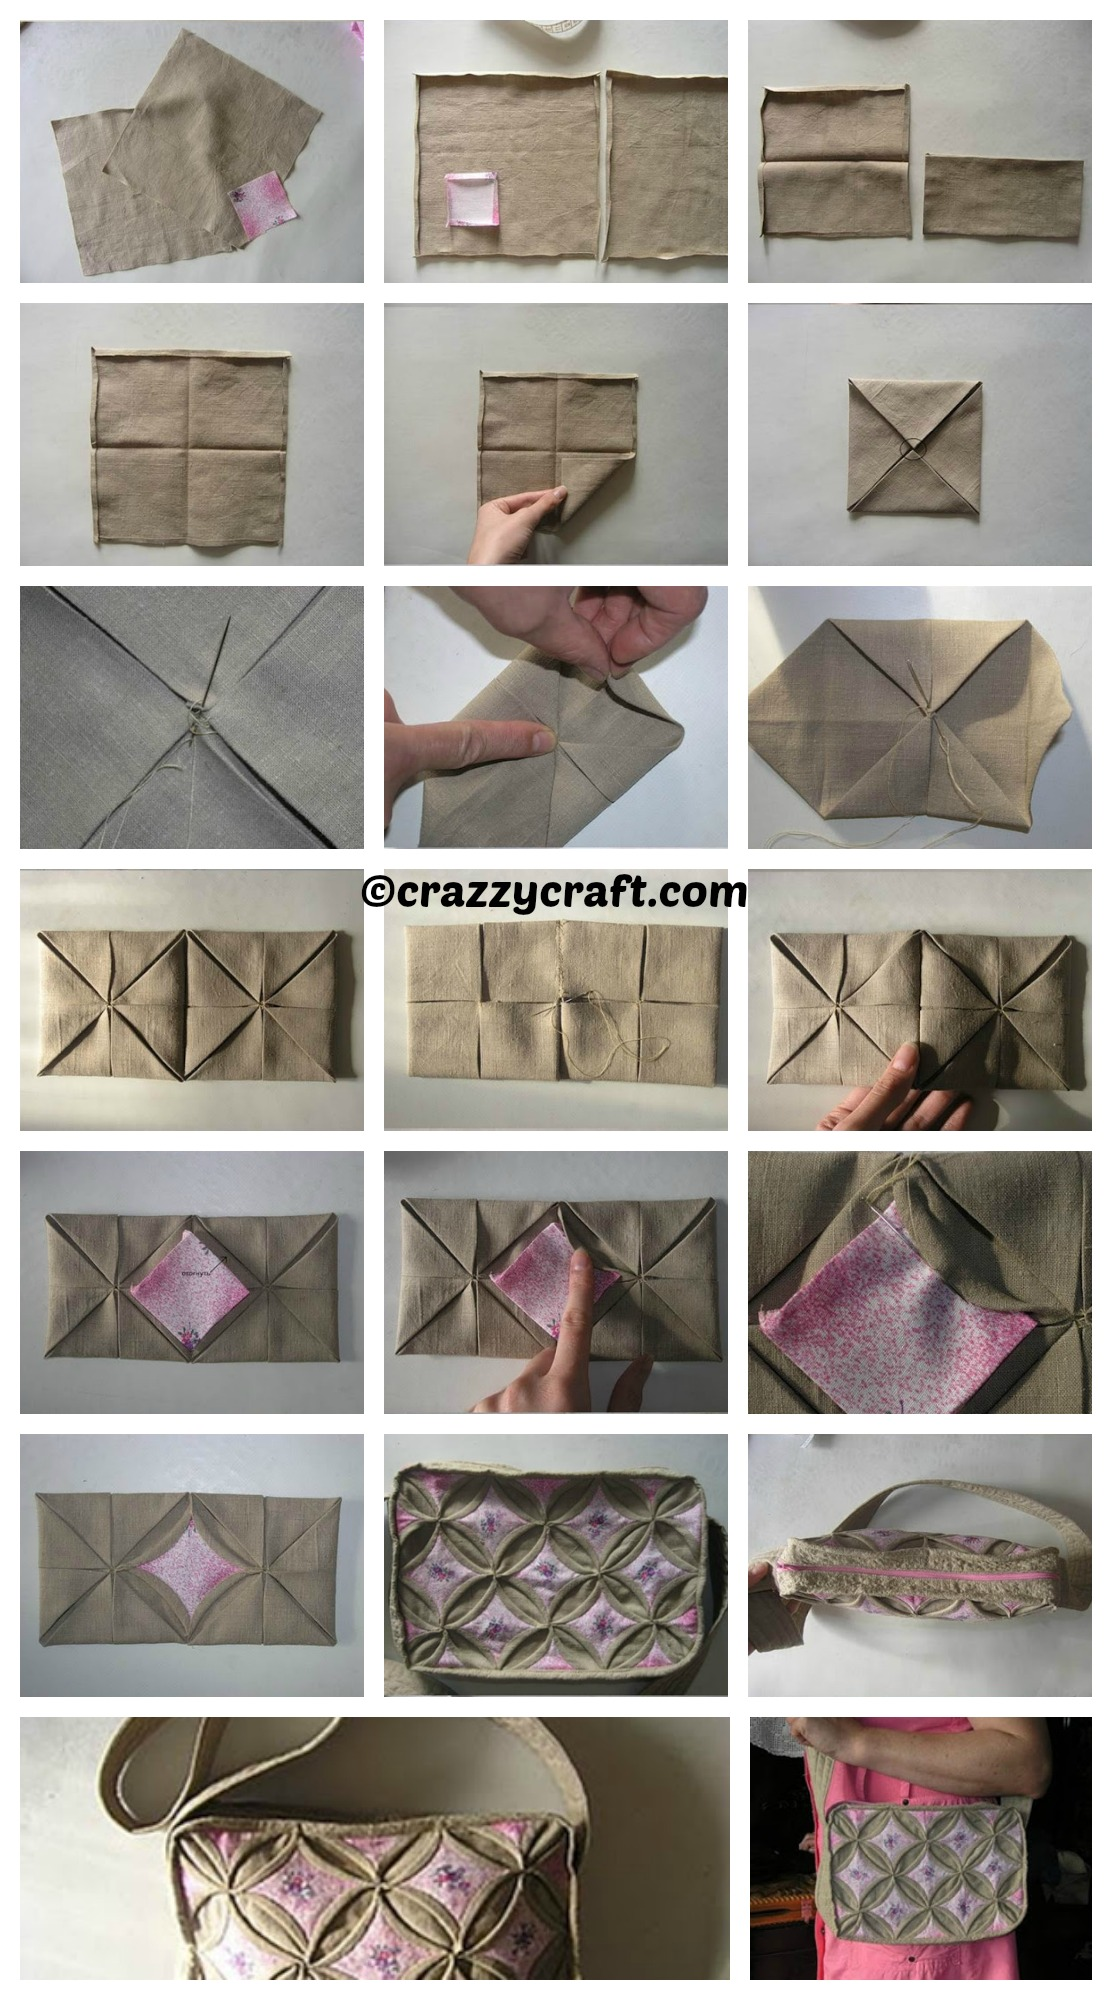 How to make an Origami Style Handbag